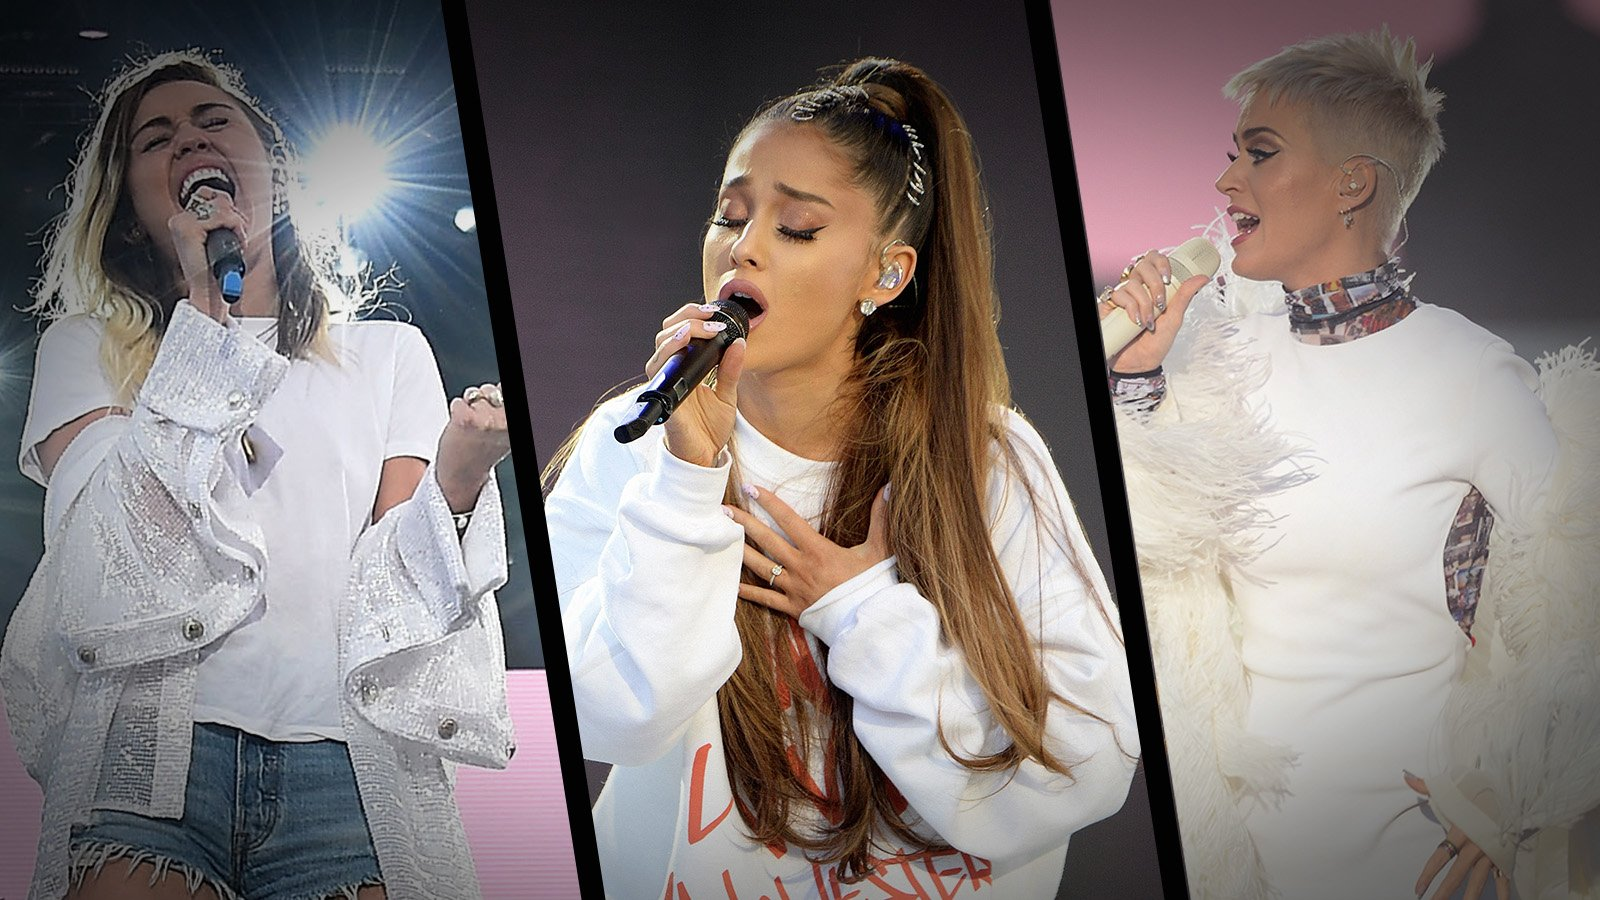 Miley Cyrus, Ariana Grande and Katy Perry perform on stage during the 'One Love Manchester' Benefit Concert at Old Trafford on June 4, 2017 in Manchester, England